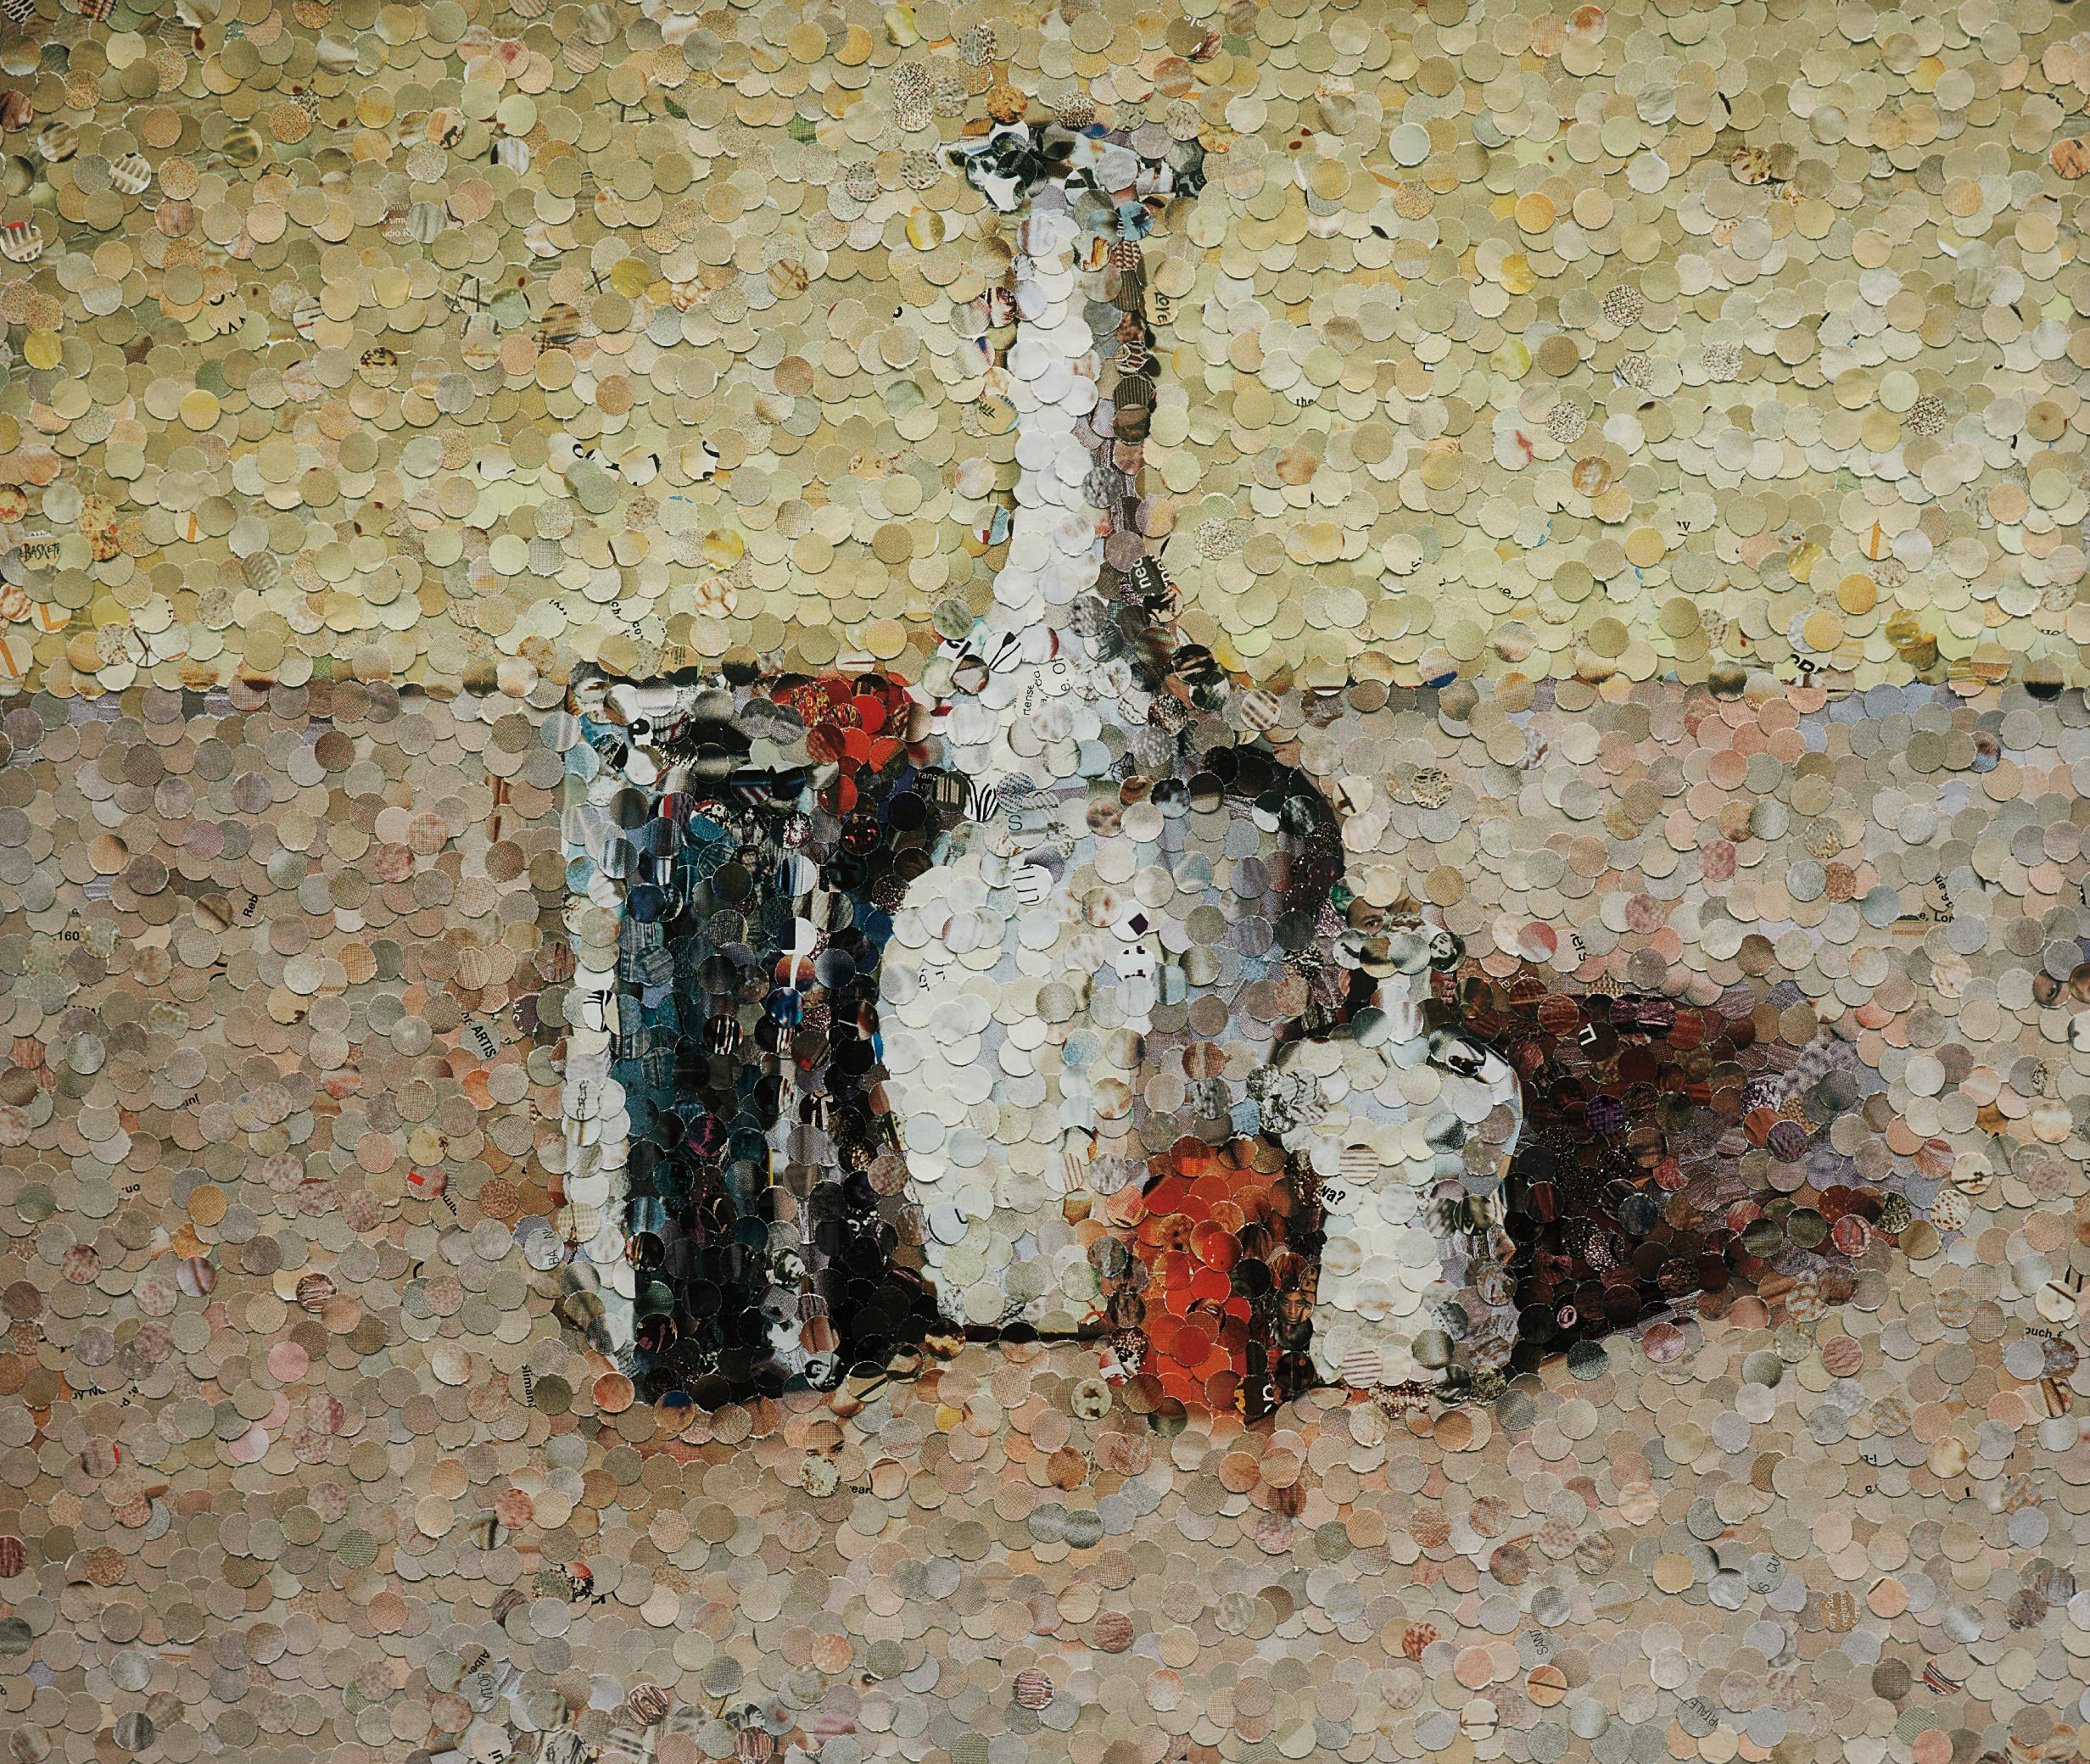 Vik Muniz-Still Life after Morandi from Pictures of Magazines-2004